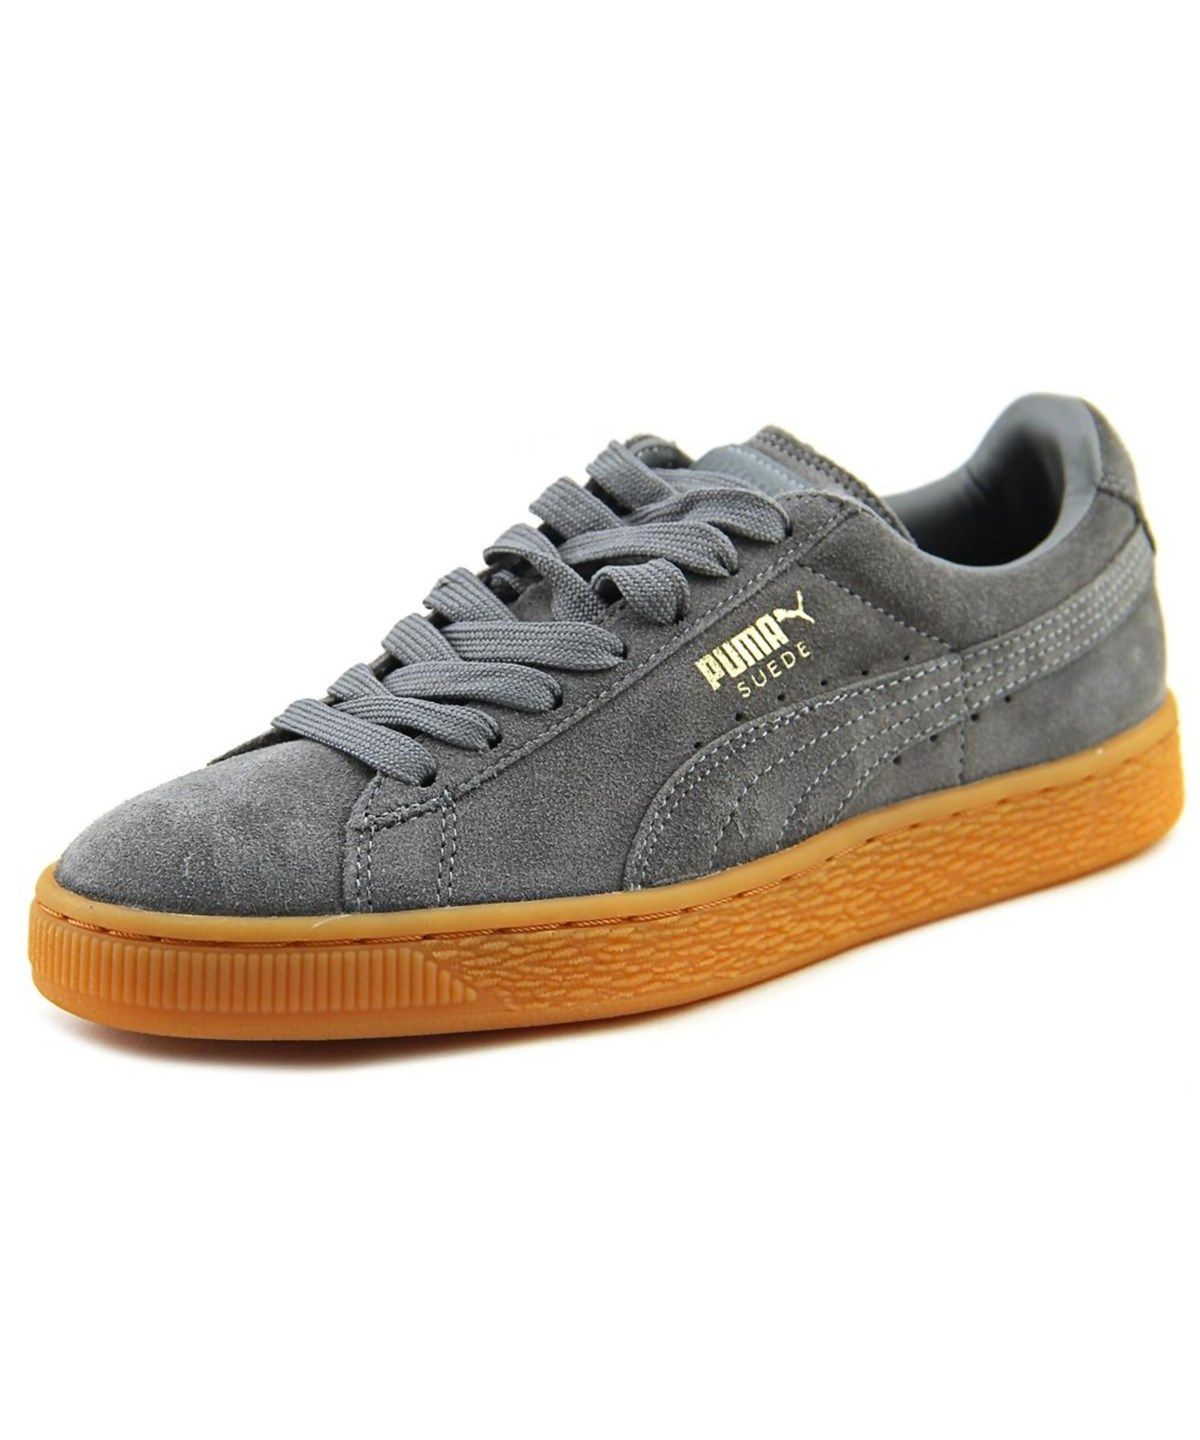 5982beb03f8 PUMA Puma Suede Winter Gum Youth Round Toe Leather Gray Sneakers .  puma   shoes  sneakers